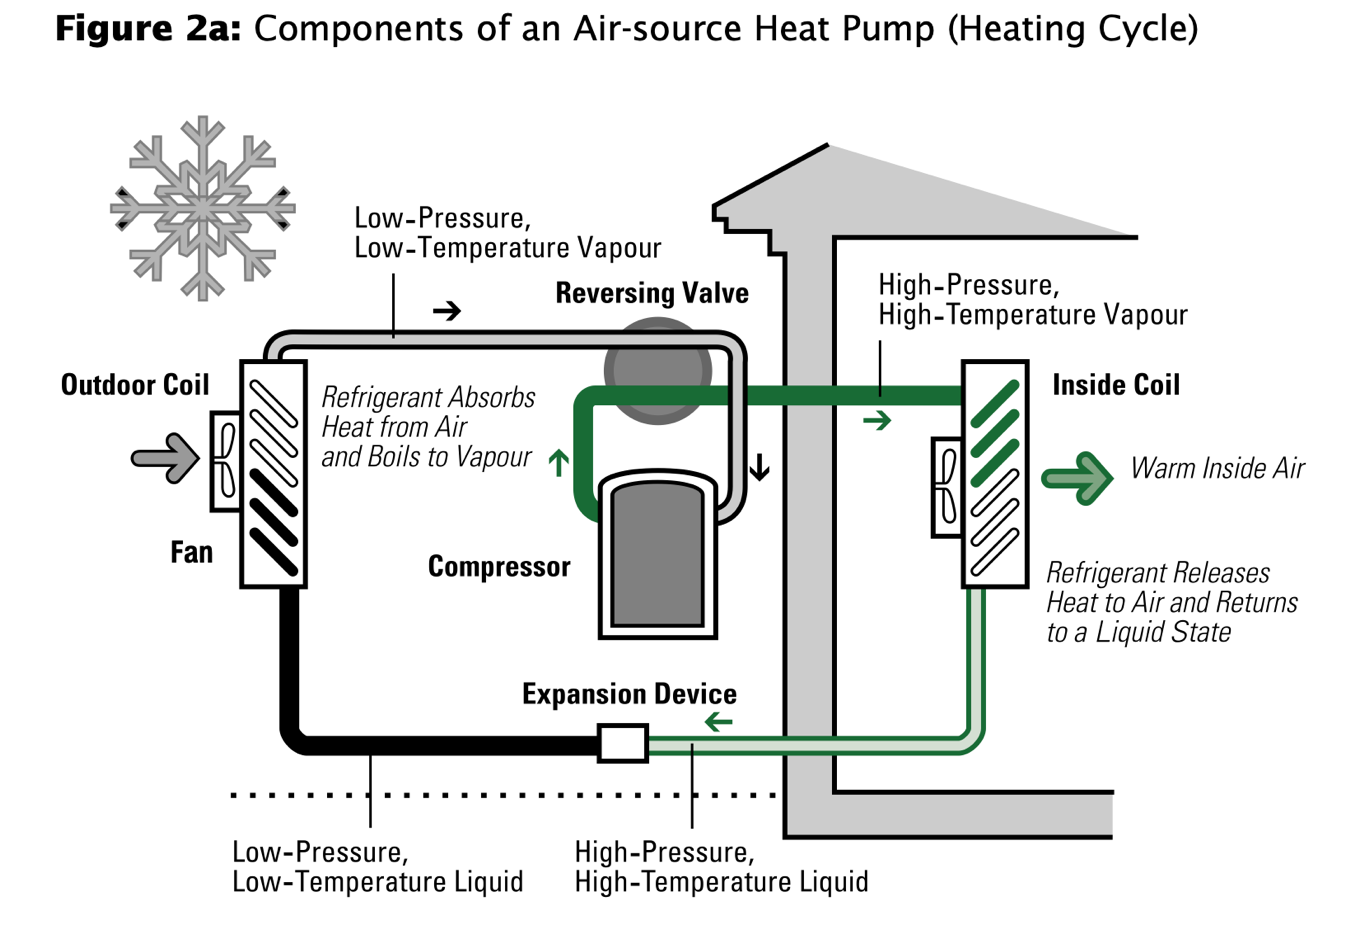 Infographic components of air-source heat pumping